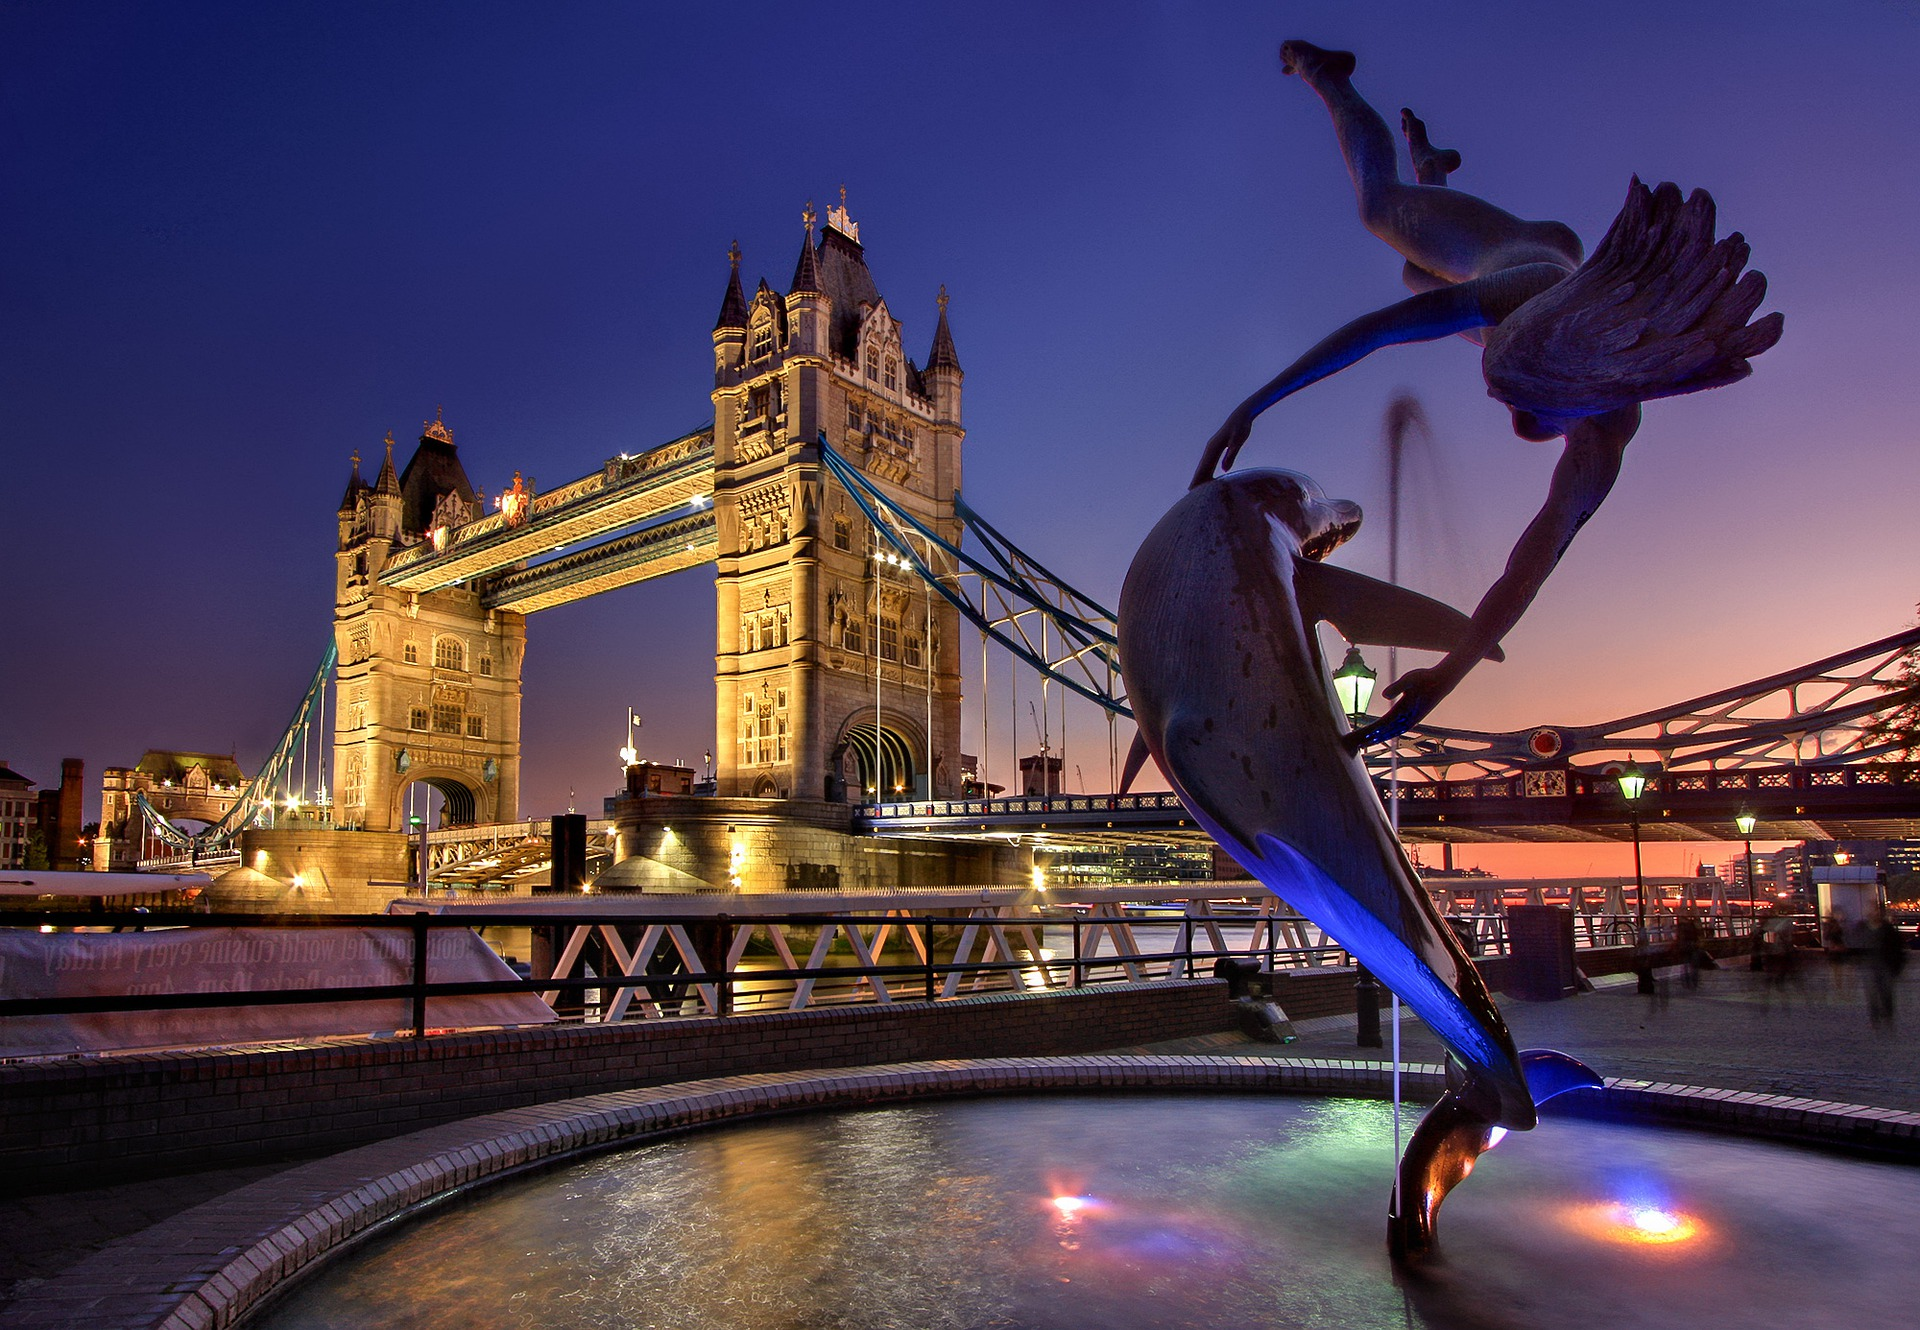 Where to Stay in London: The Best Hotels and Neighborhoods